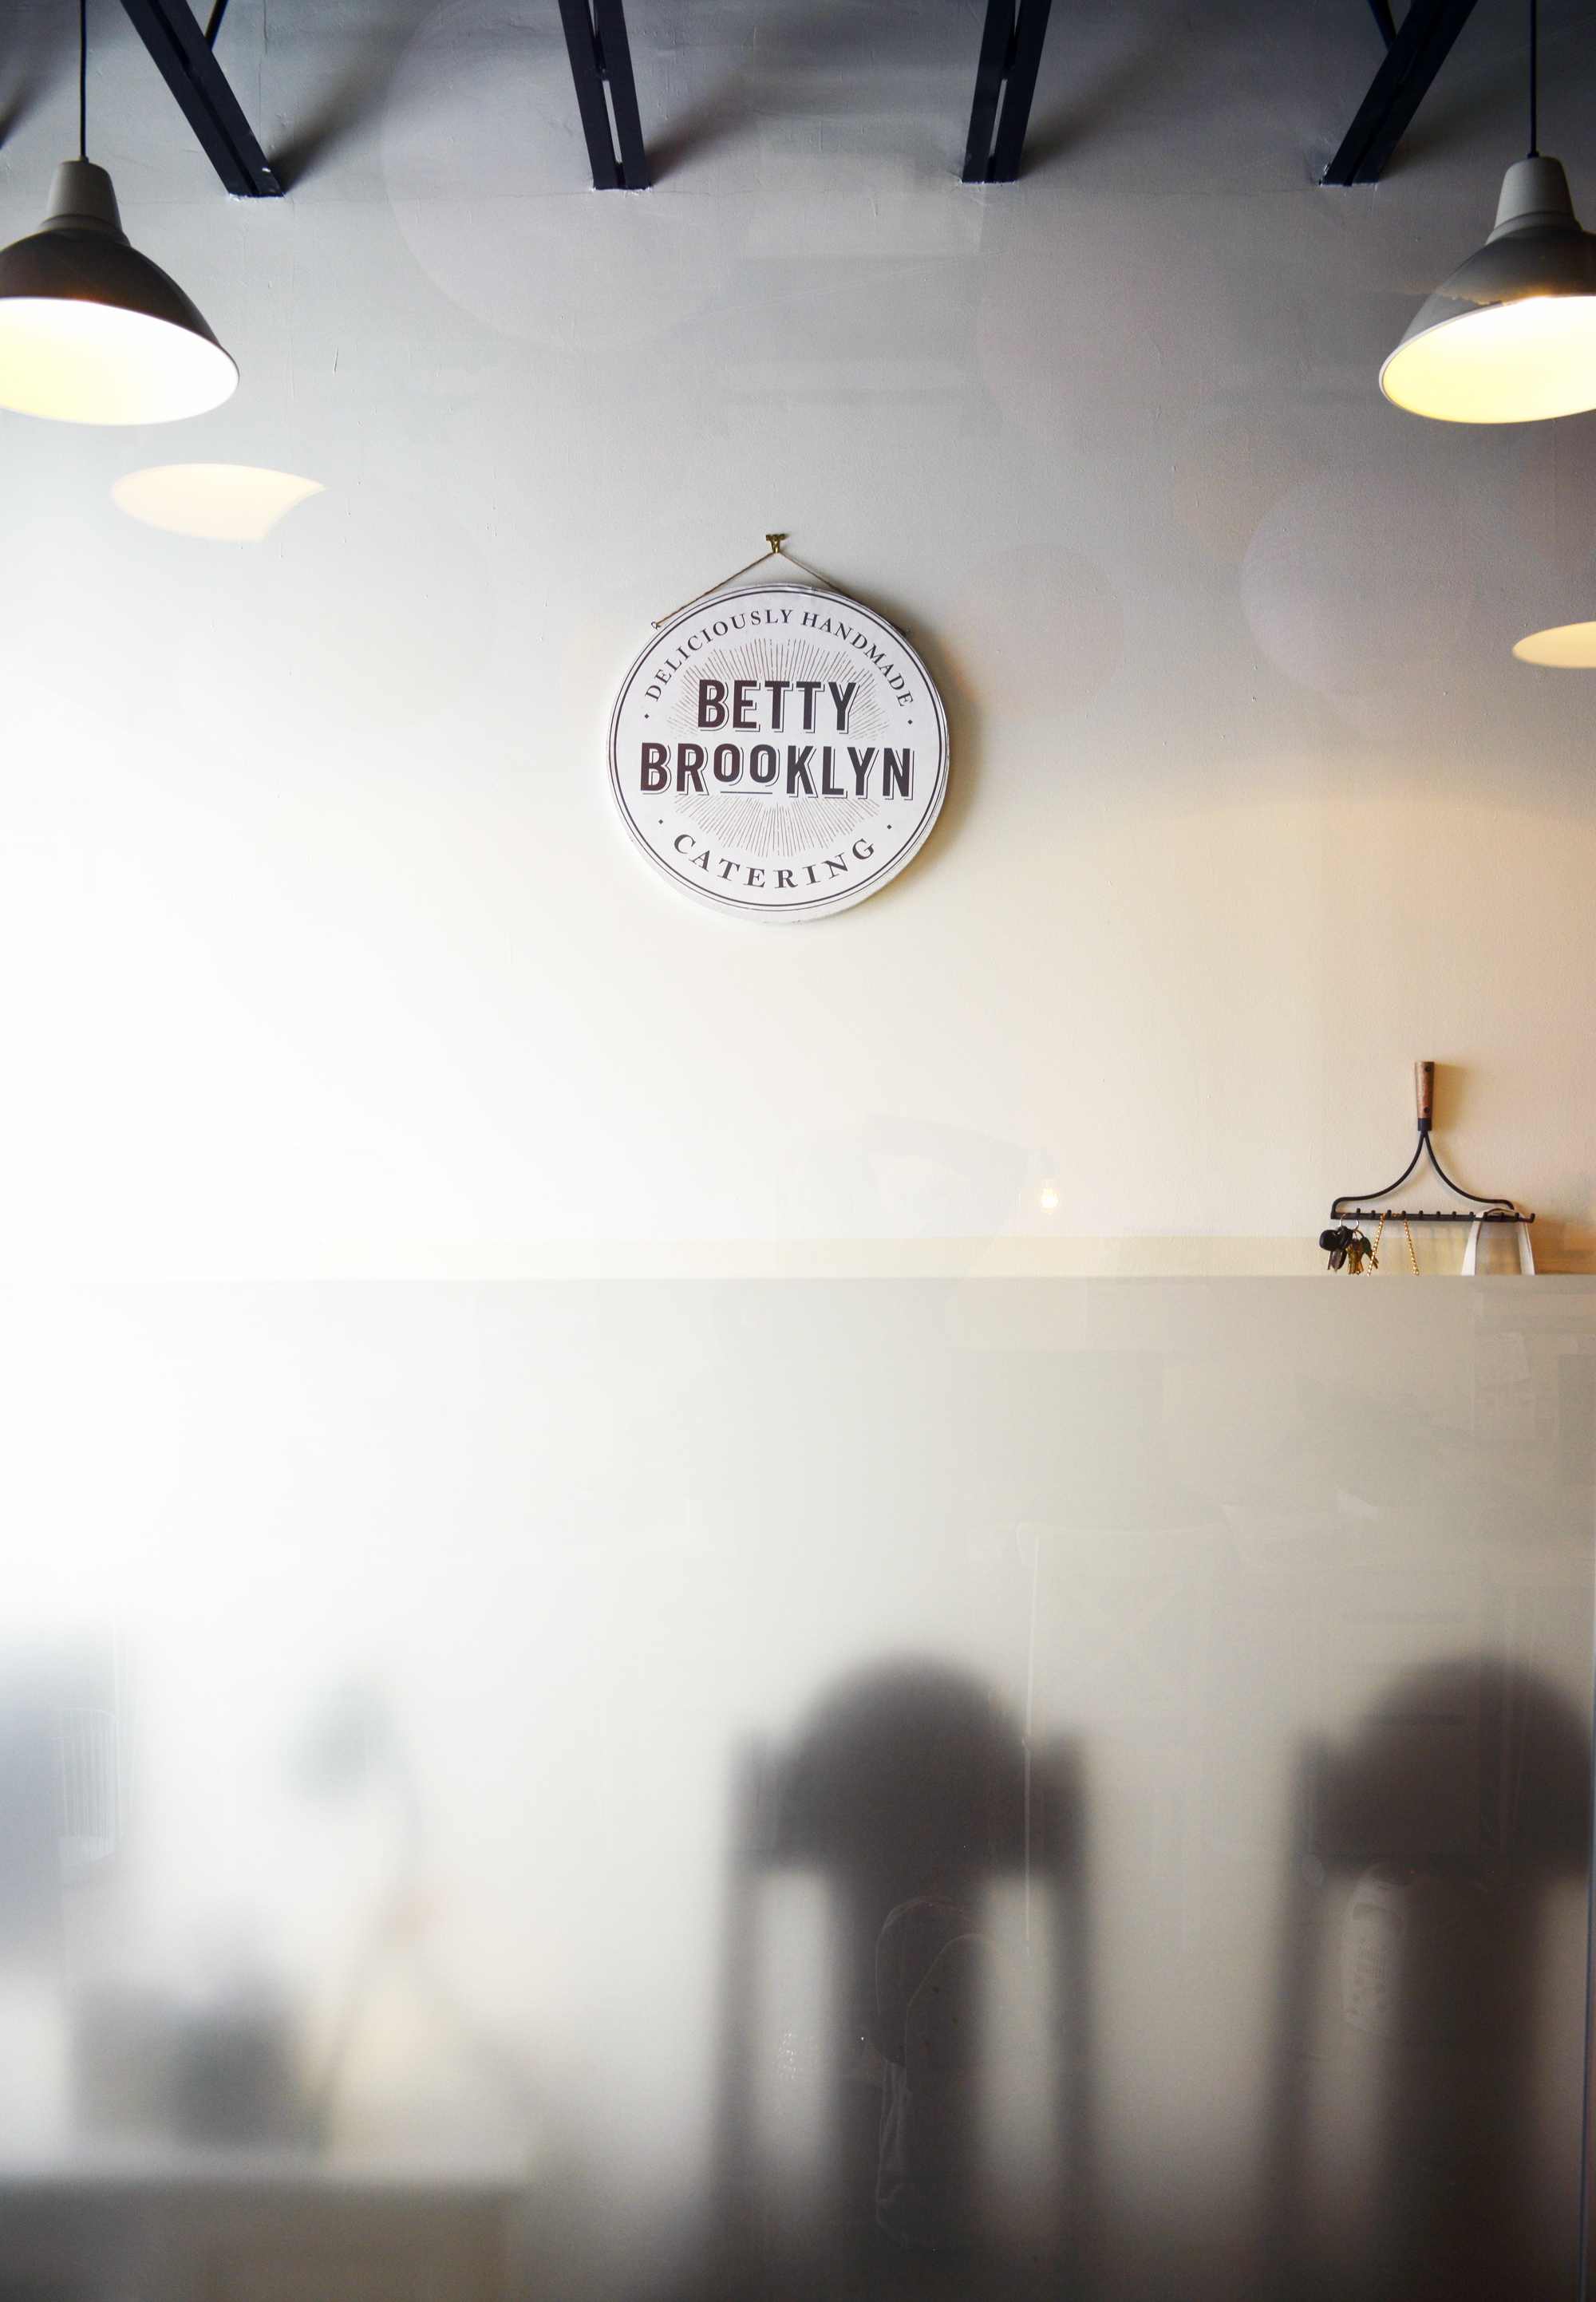 This is the view clients see as they immediately enter to the left - it is Betty's office. The Betty Brooklyn Catering logo and sign is the focal point of that wall    | Betty Brooklyn Catering Co. | Photography by: Lauren L Caron © 2015.